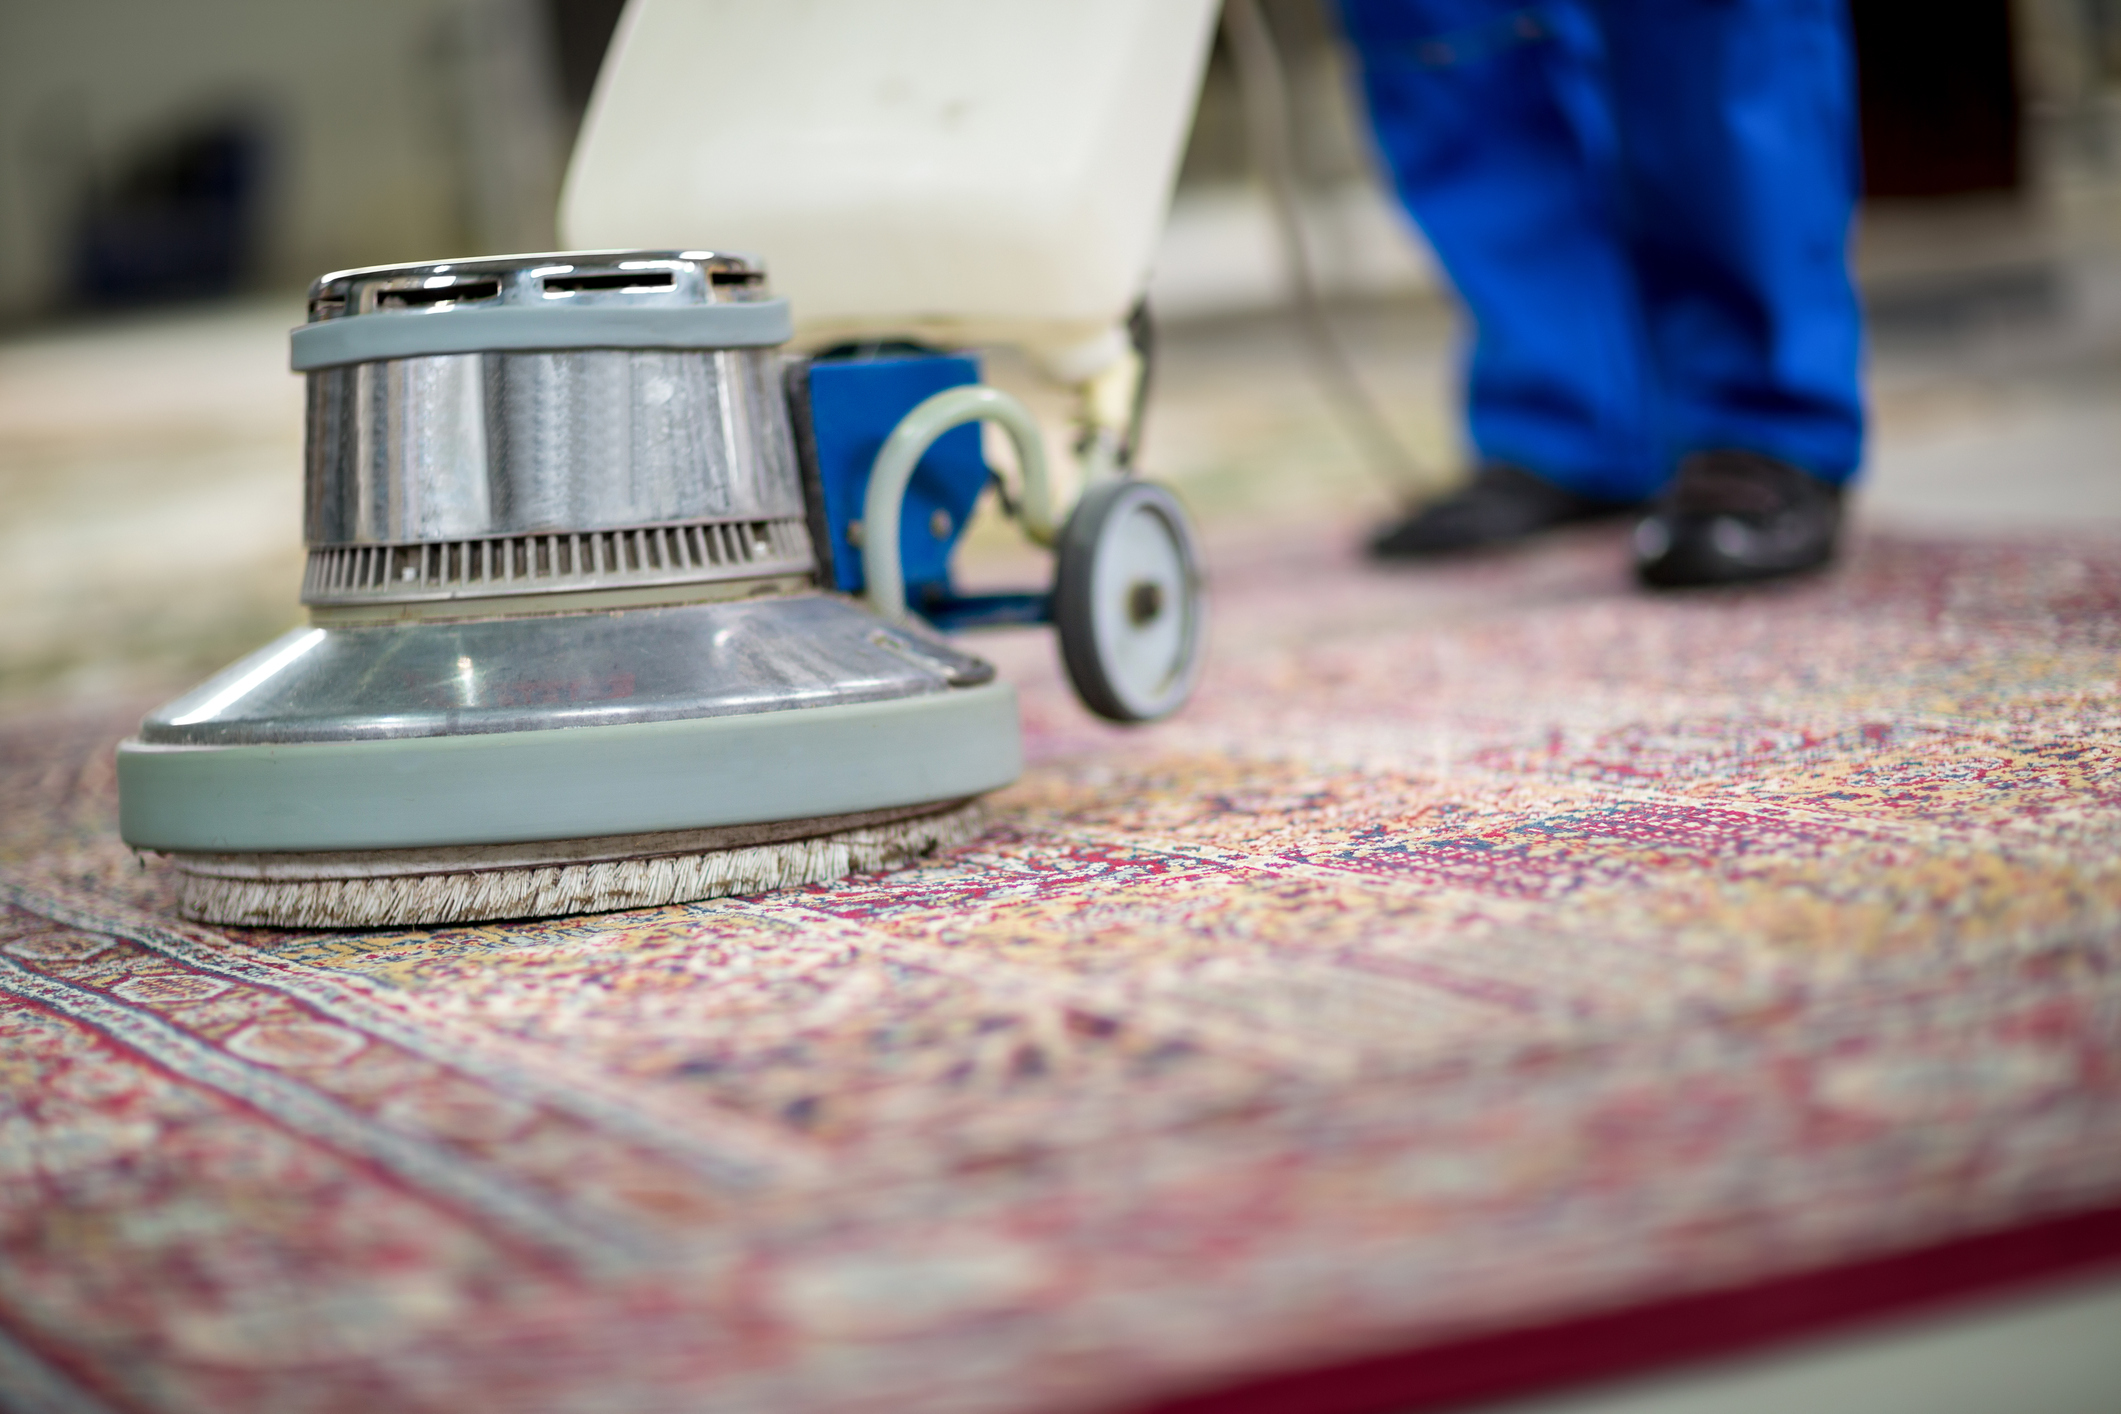 Carpet & Rug Cleaning — Stainbusters